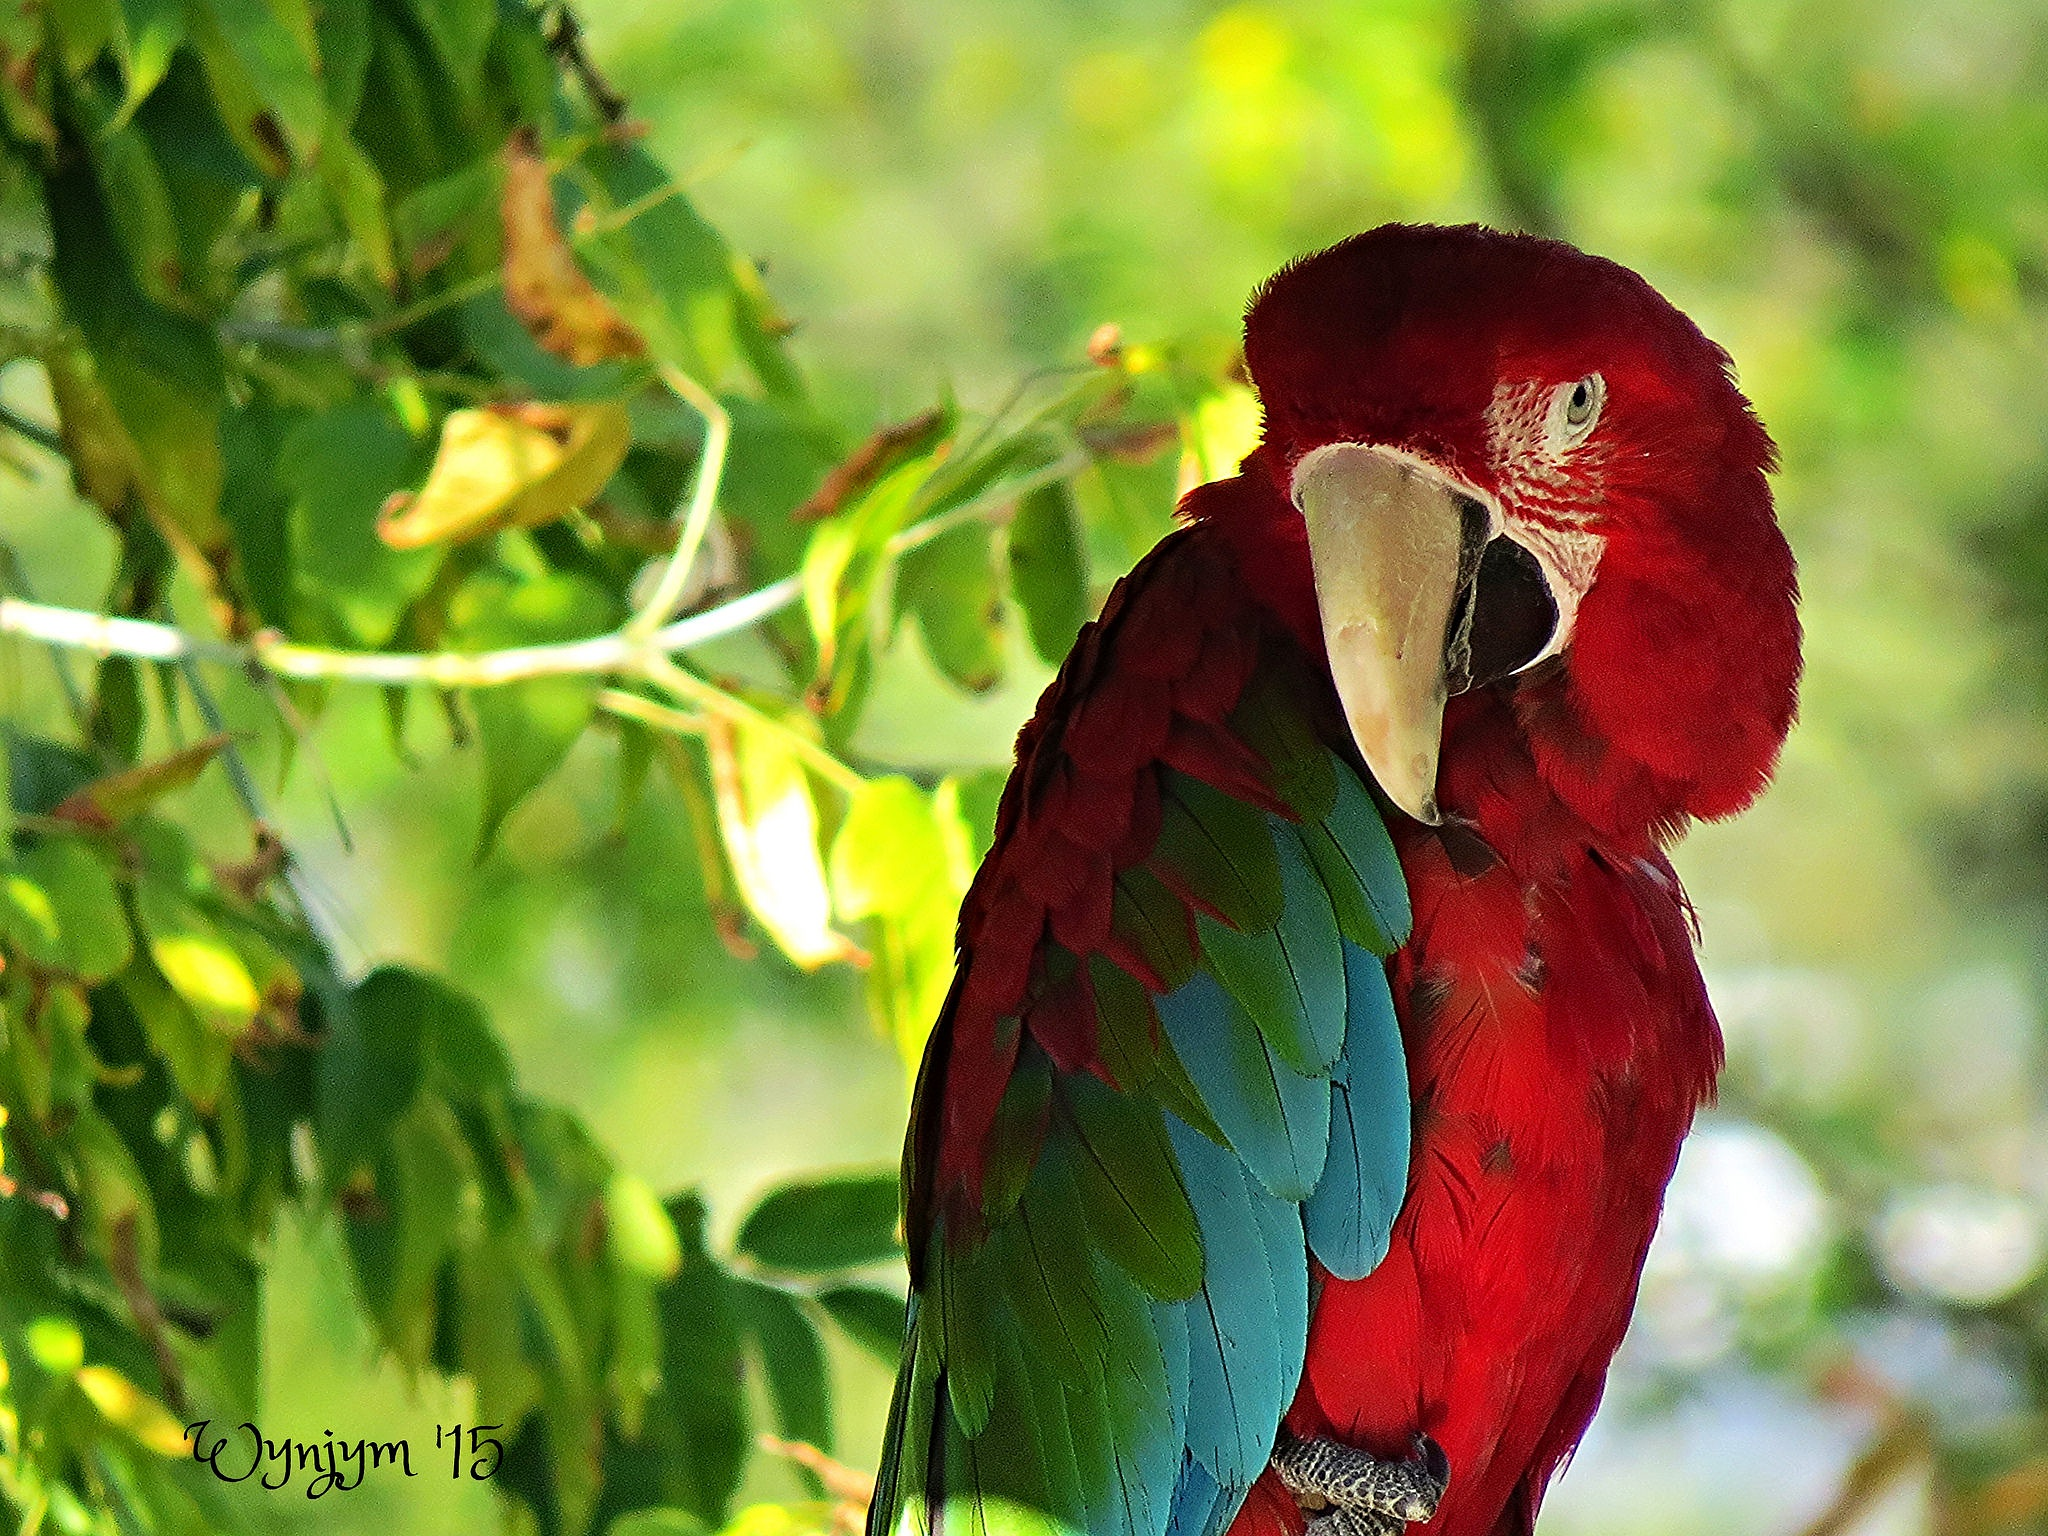 Green-winged Macaw by Wynjym ChrisNP